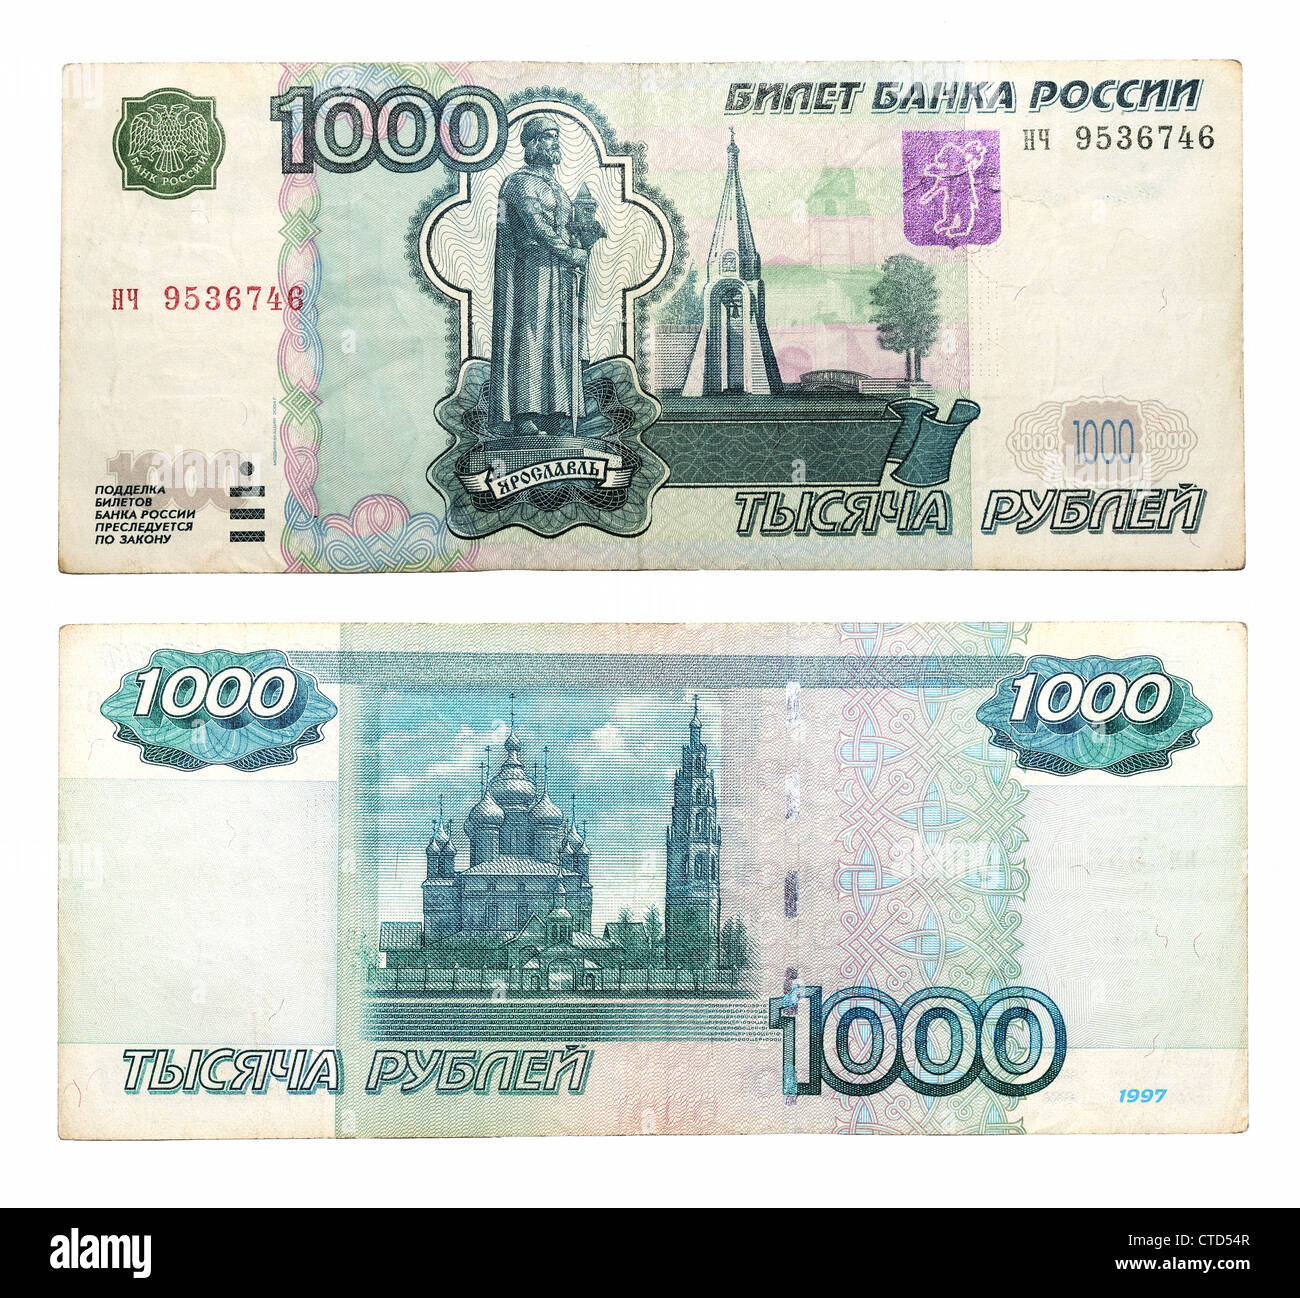 1000 Russian rubles of 1997 Stock Photo